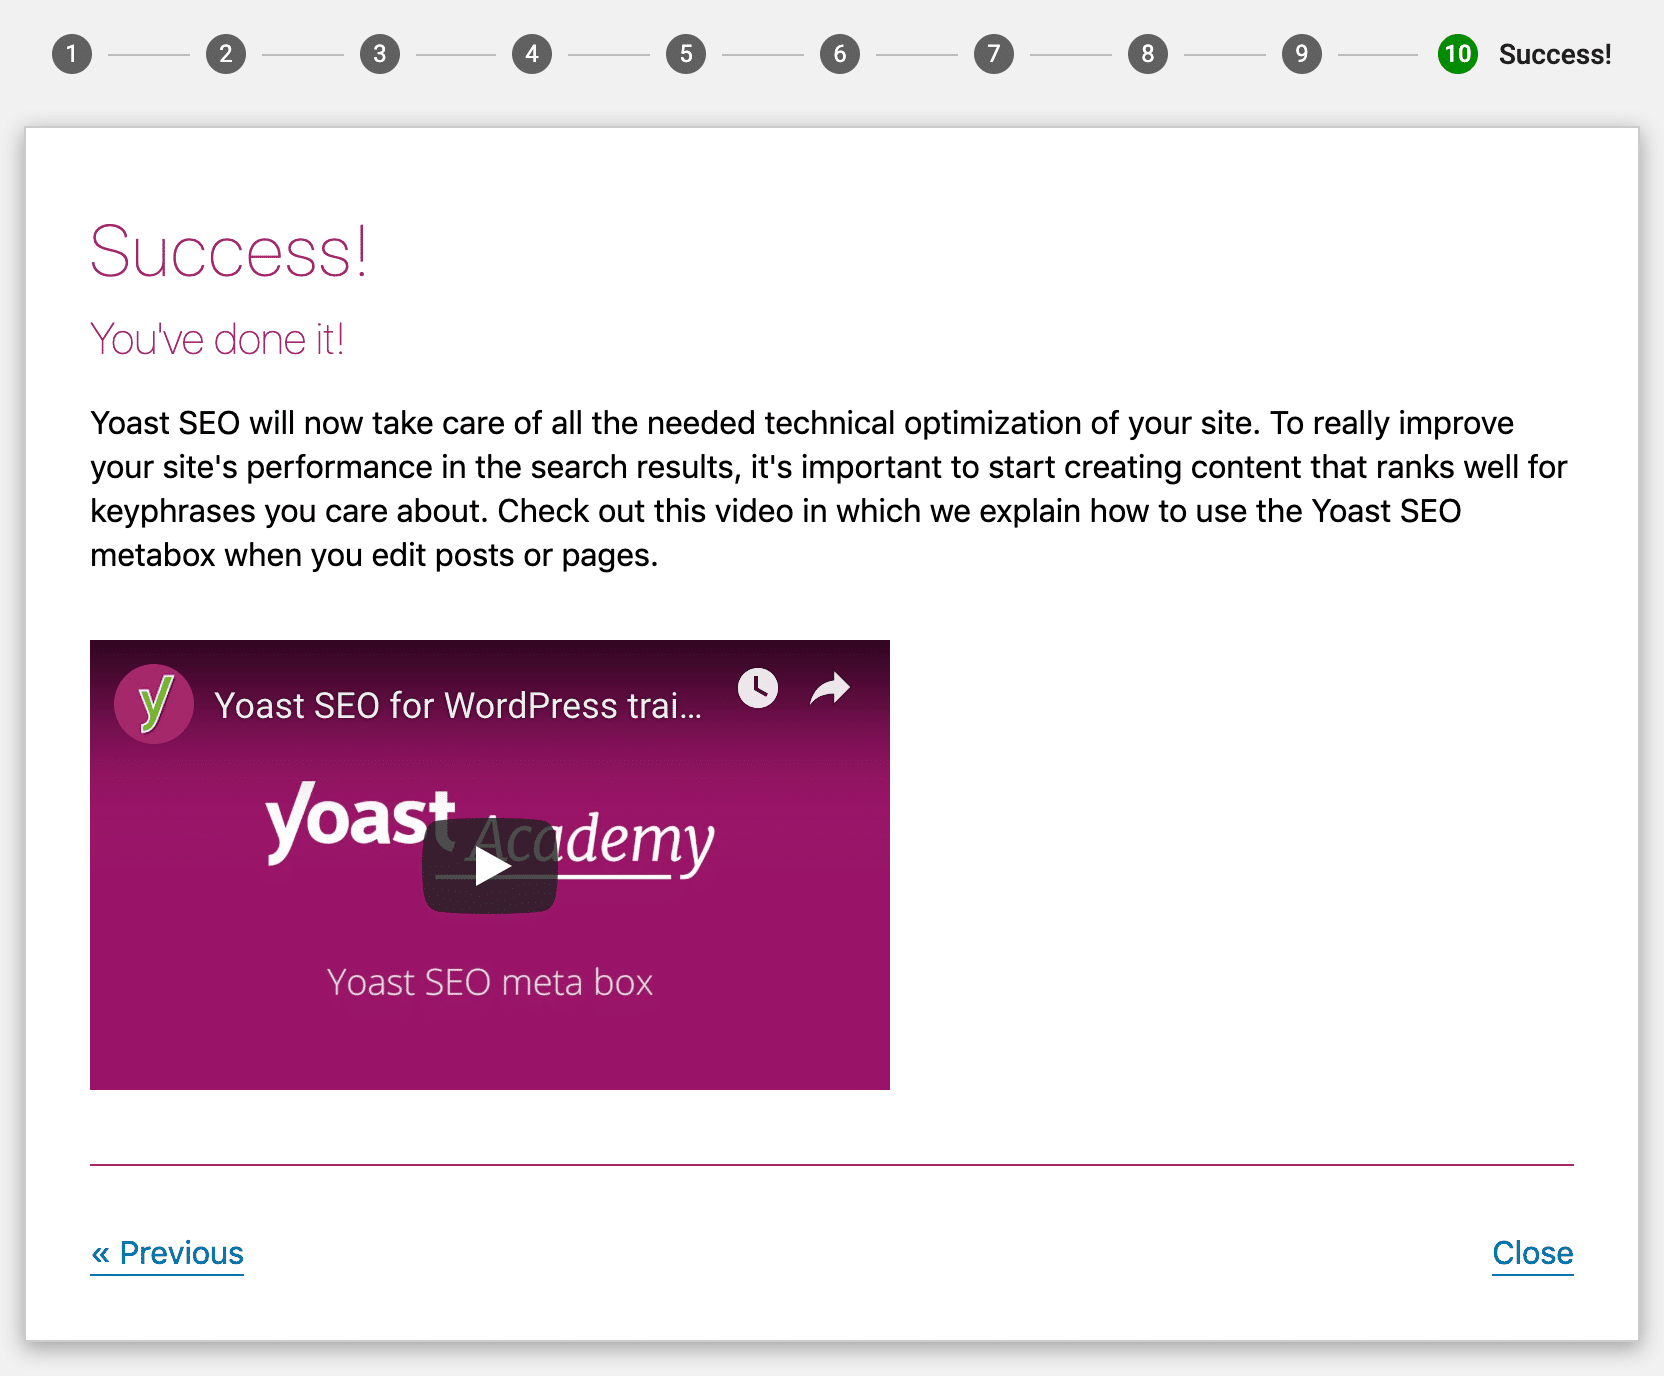 Yoast SEO success